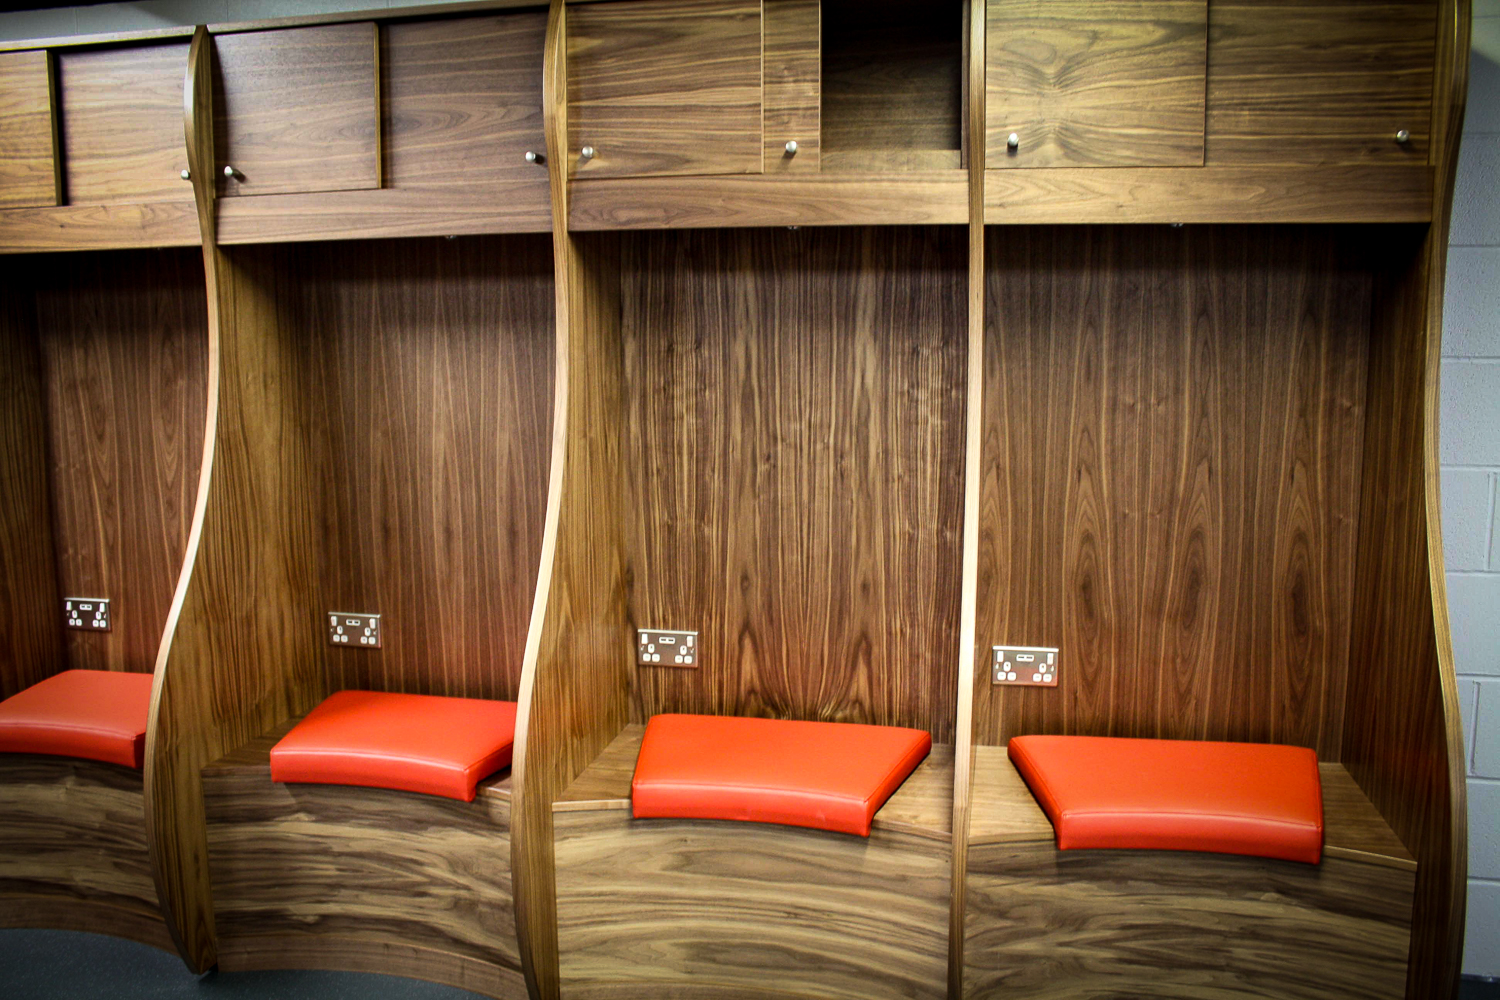 Upholstery used in changing rooms